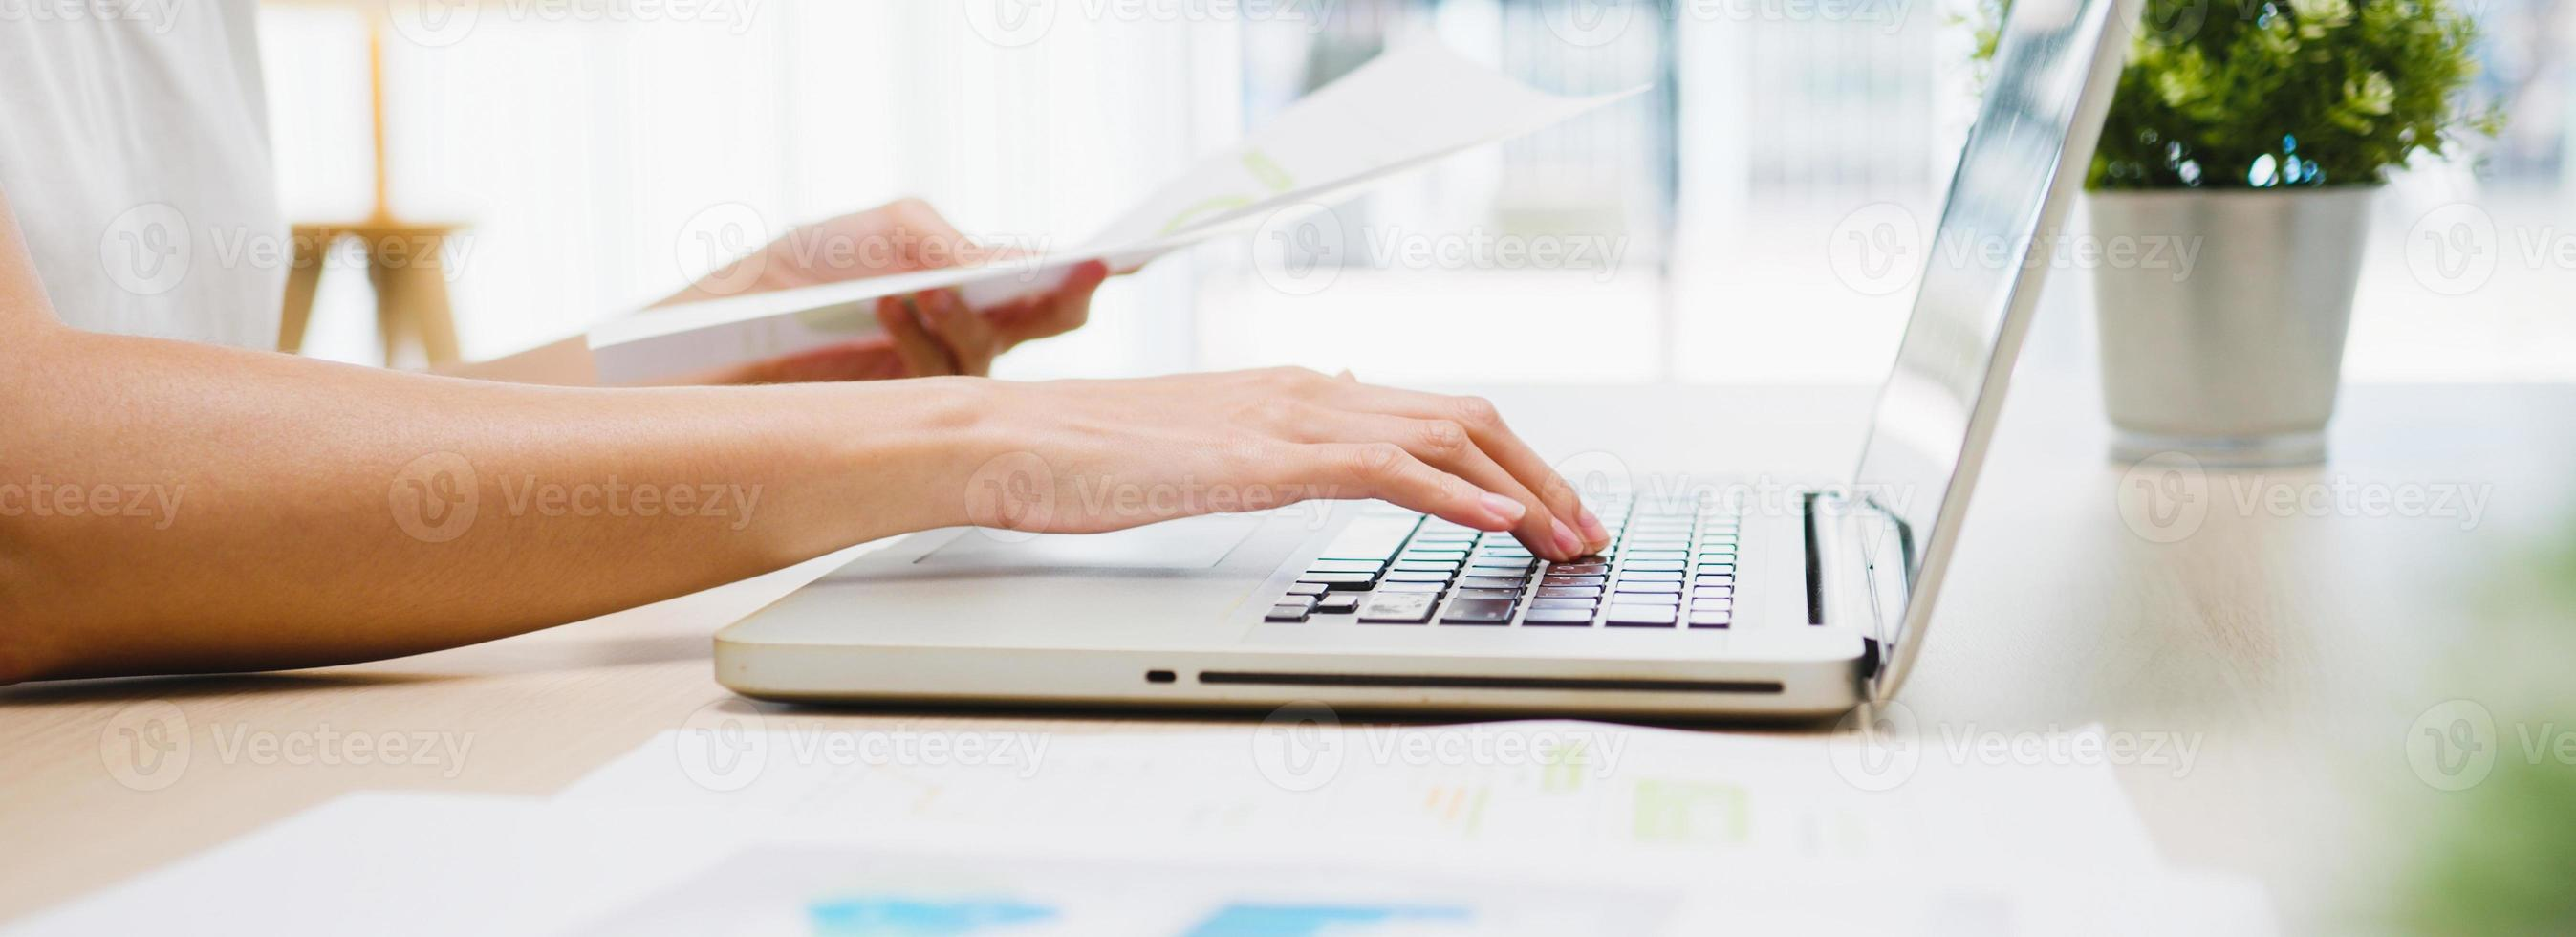 Freelance Asia businesswoman casual wear using laptop working in living room at home. Remotely, social distancing, quarantine for corona virus prevention. Panoramic banner background with copy space. photo